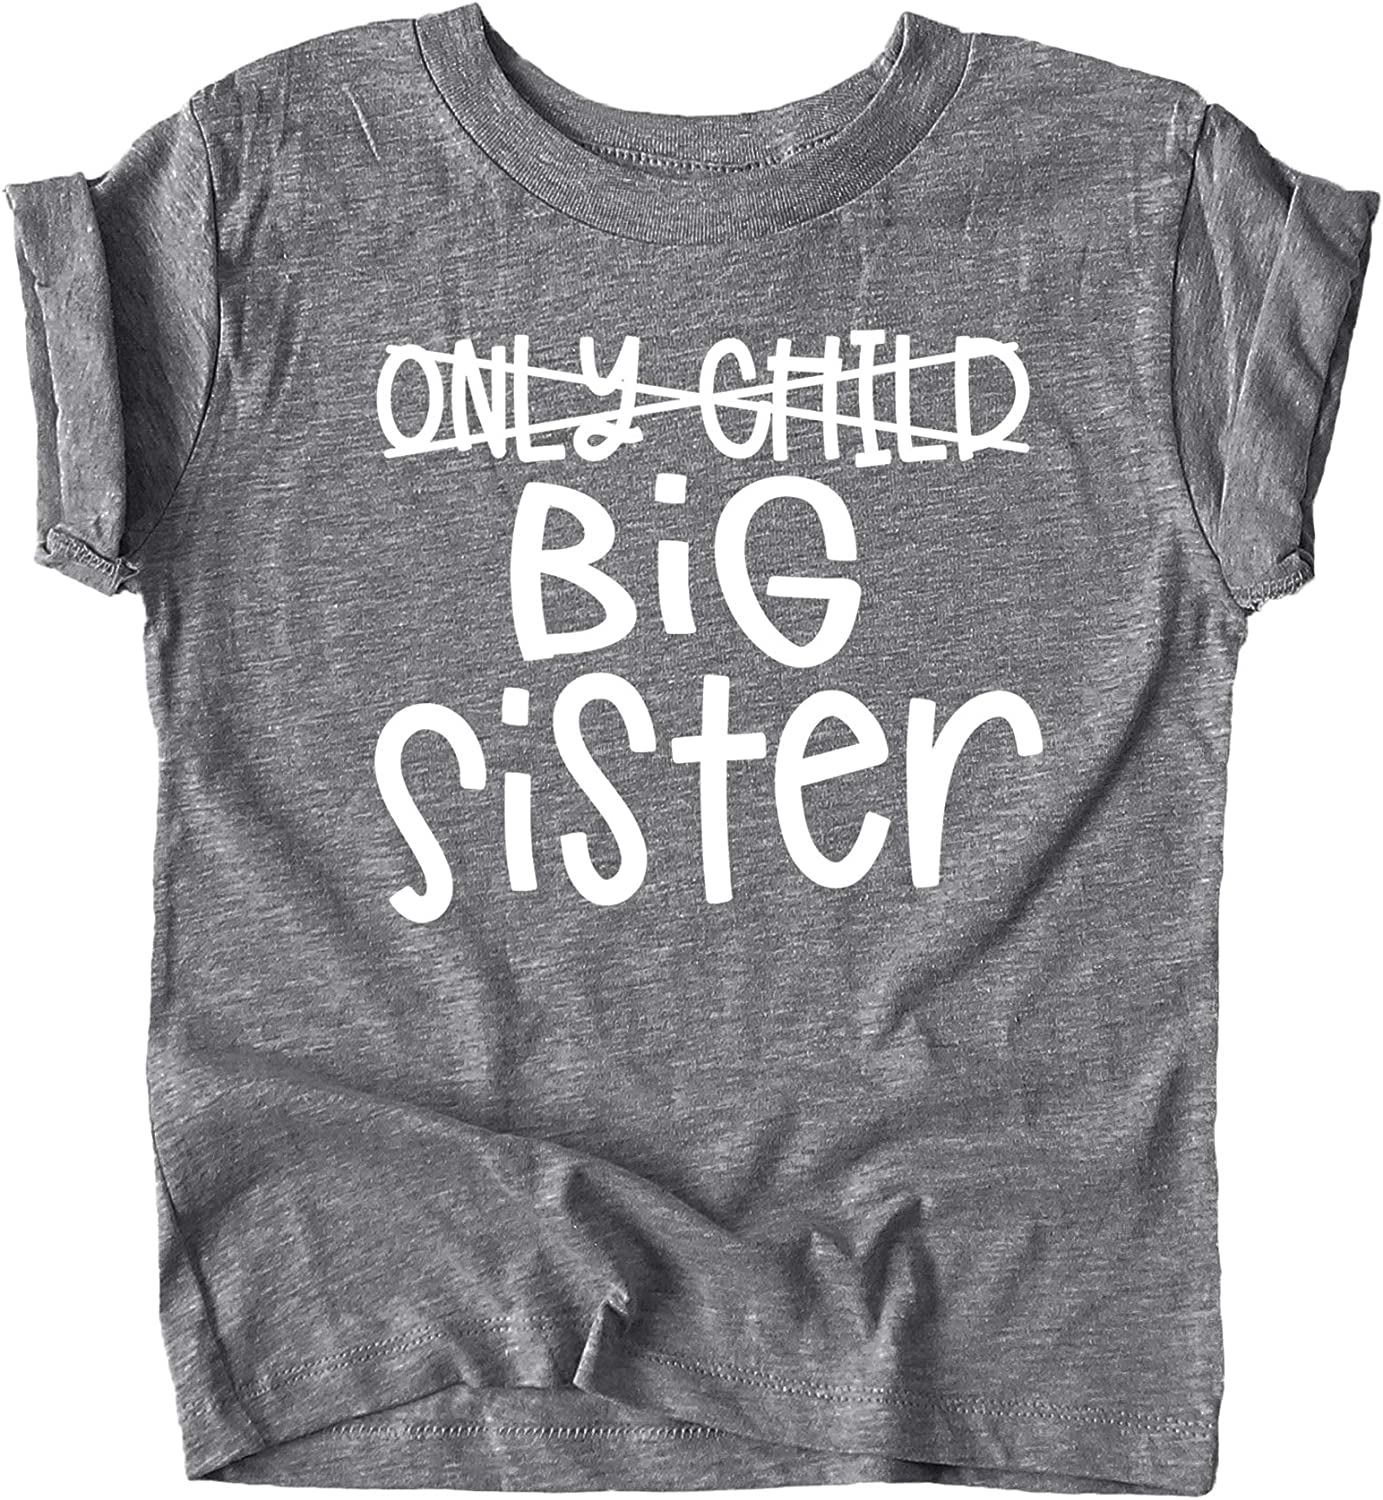 Olive Loves Apple Big Sister Heart Sibling Reveal T-Shirt for Baby and Toddler Girls Sibling Outfits